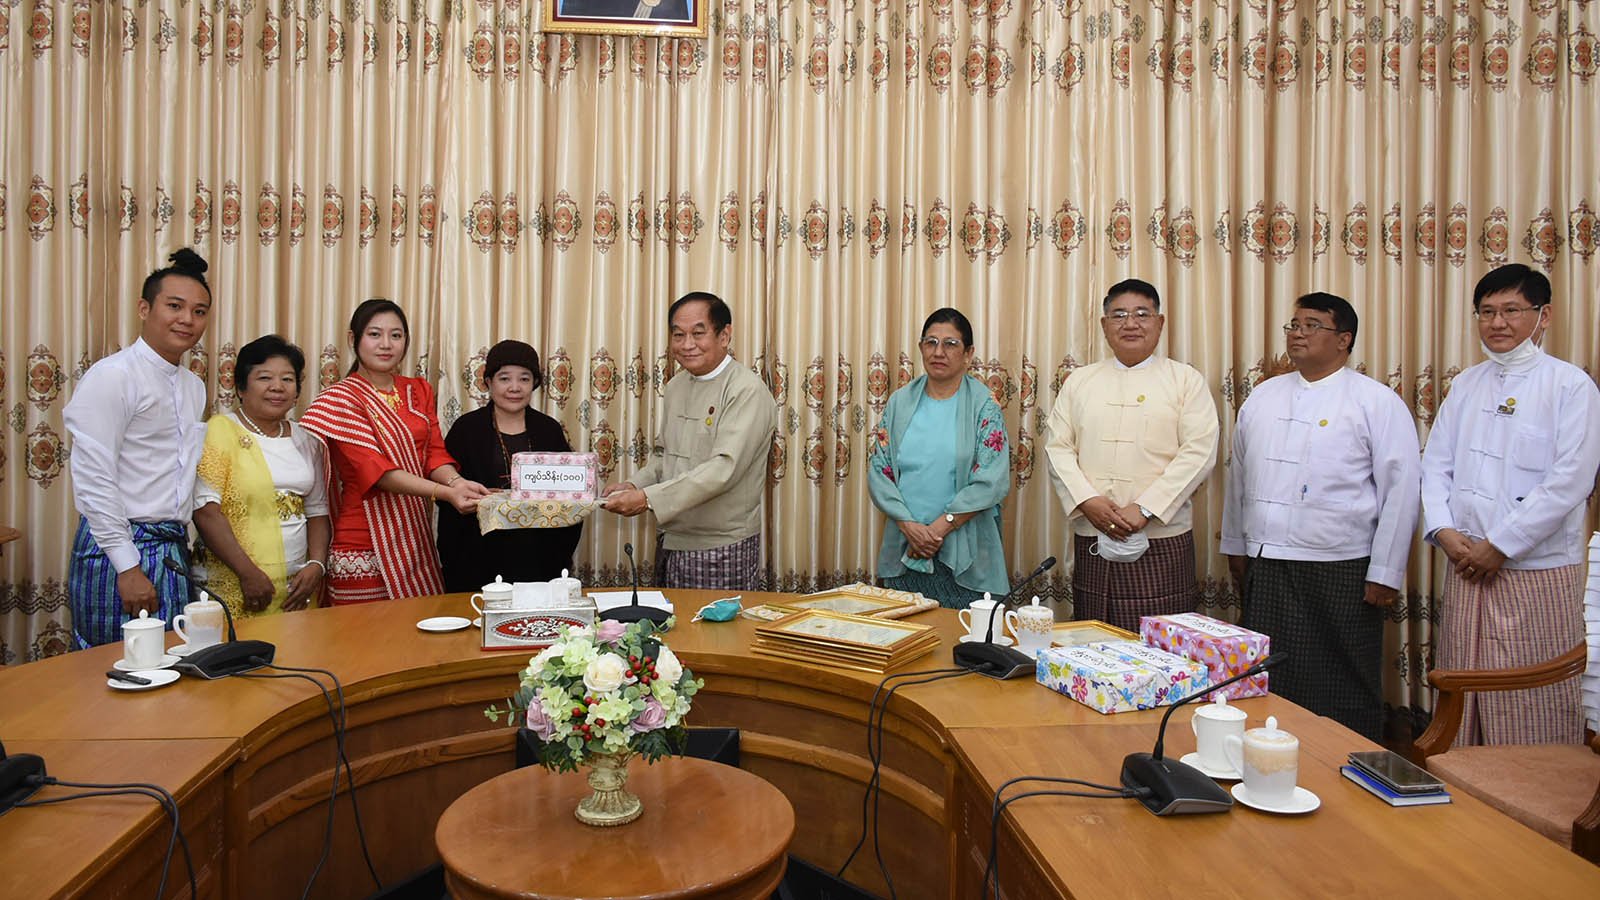 Union Minister for Health and Sports Dr Myint Htwe receives donations from well-wishers to the Department of Public Health for efficient uses in Nay Pyi Taw. Photo: MNA